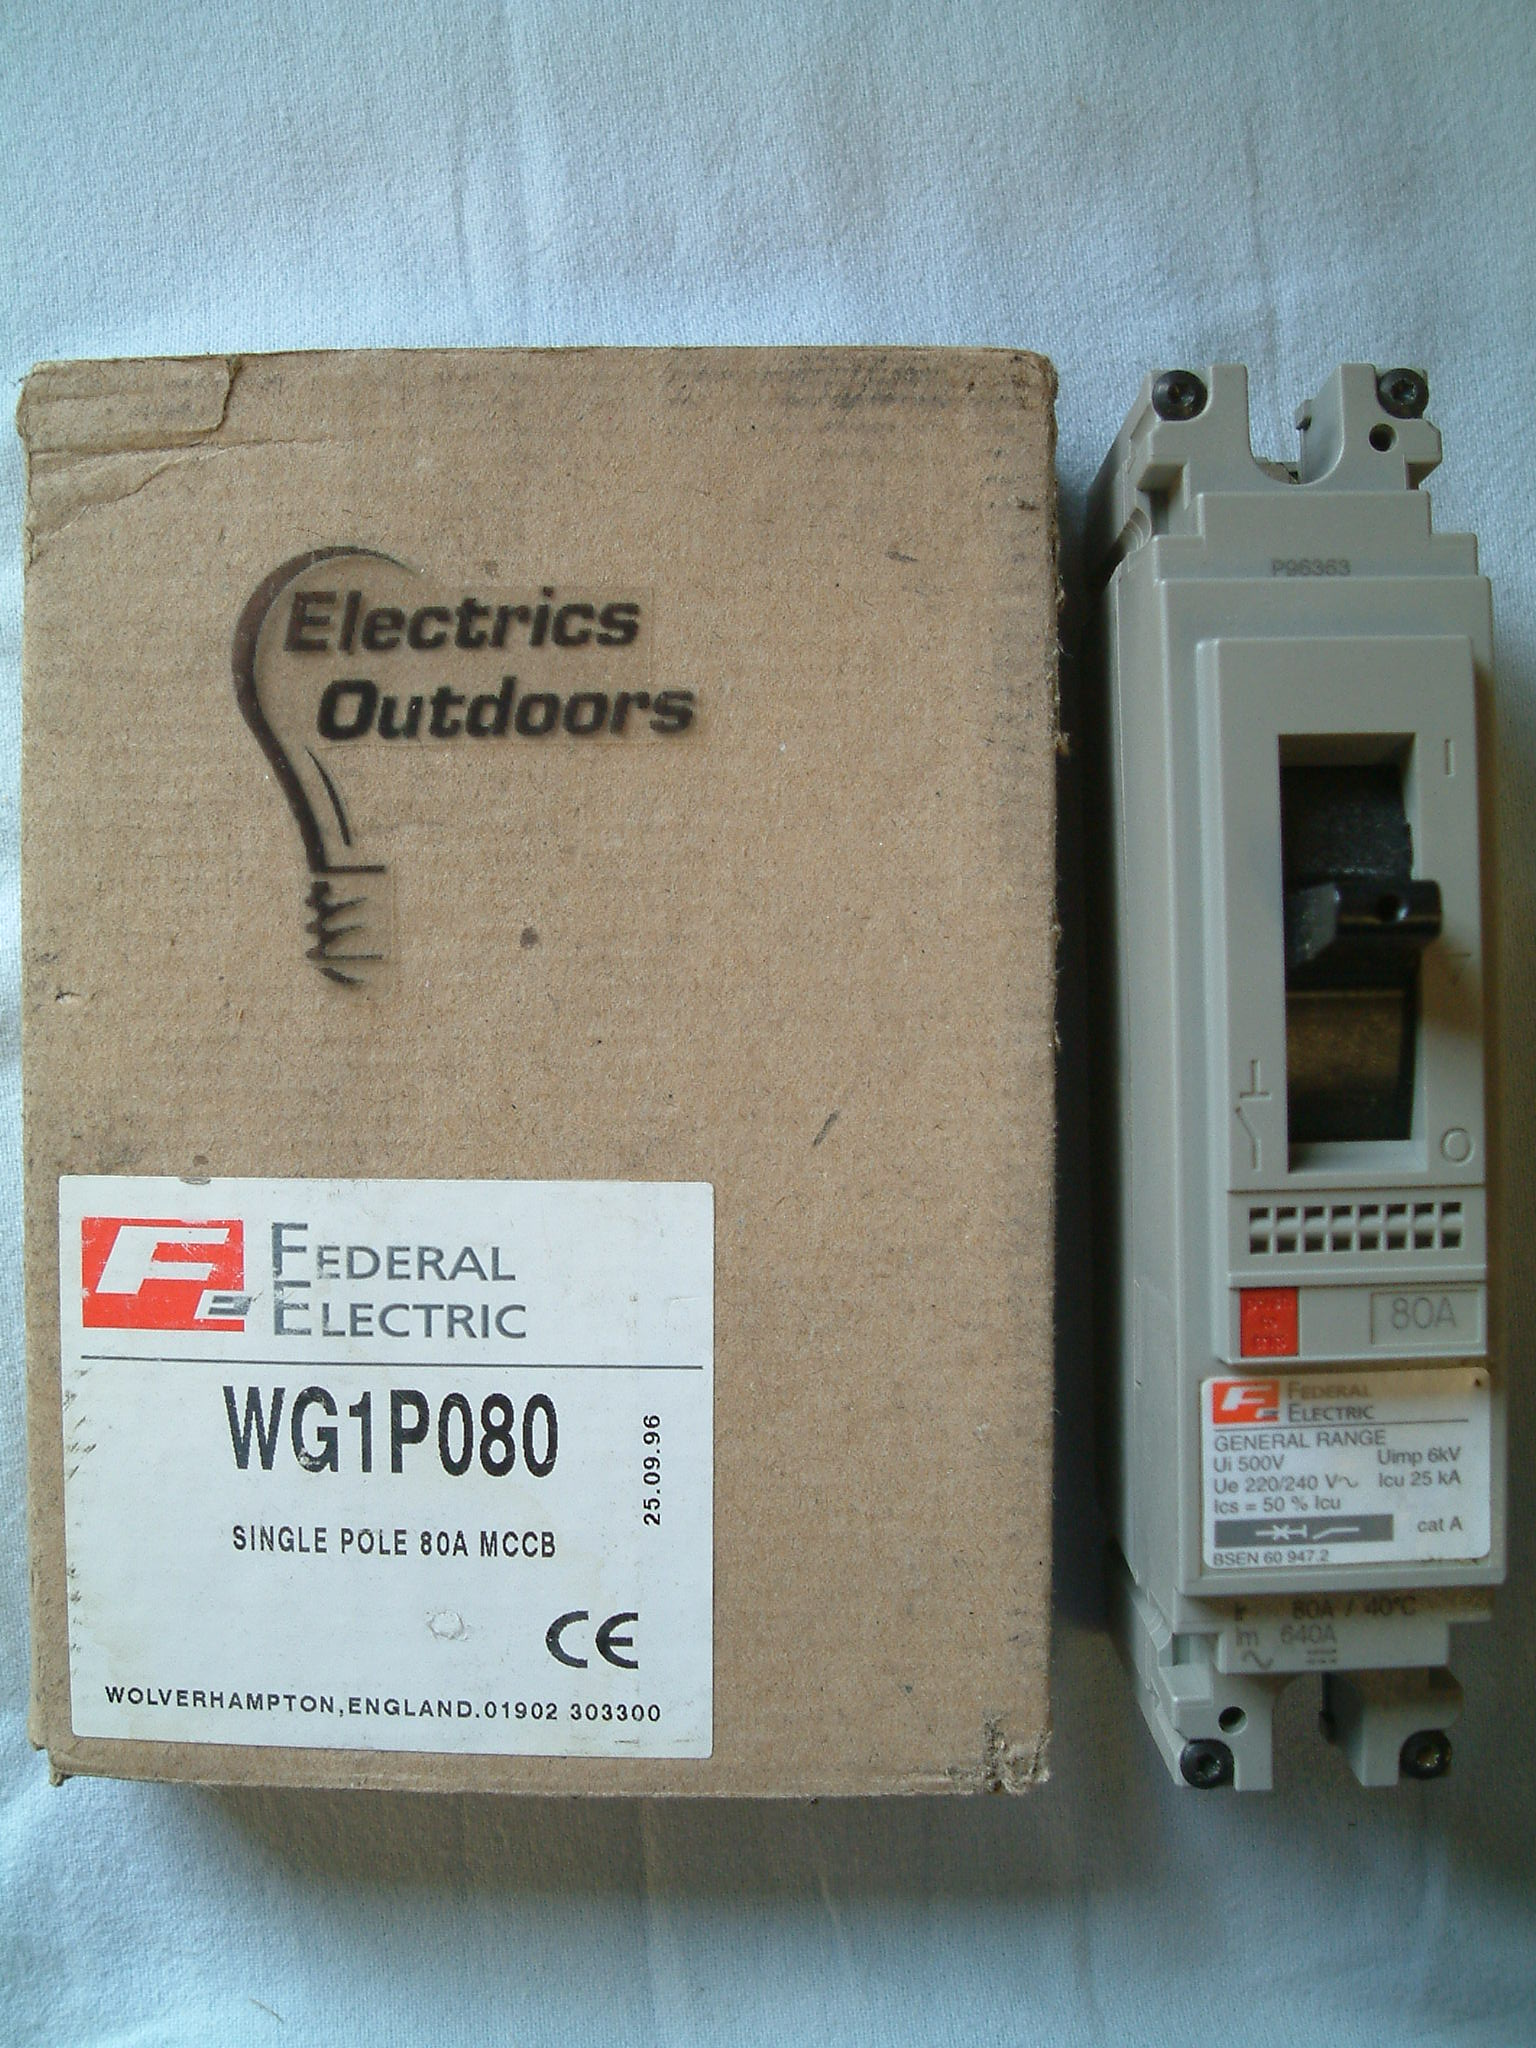 FEDERAL ELECTRIC 80 AMP 25 kA MCCB 220/240V WG1P080 GENERAL RANG